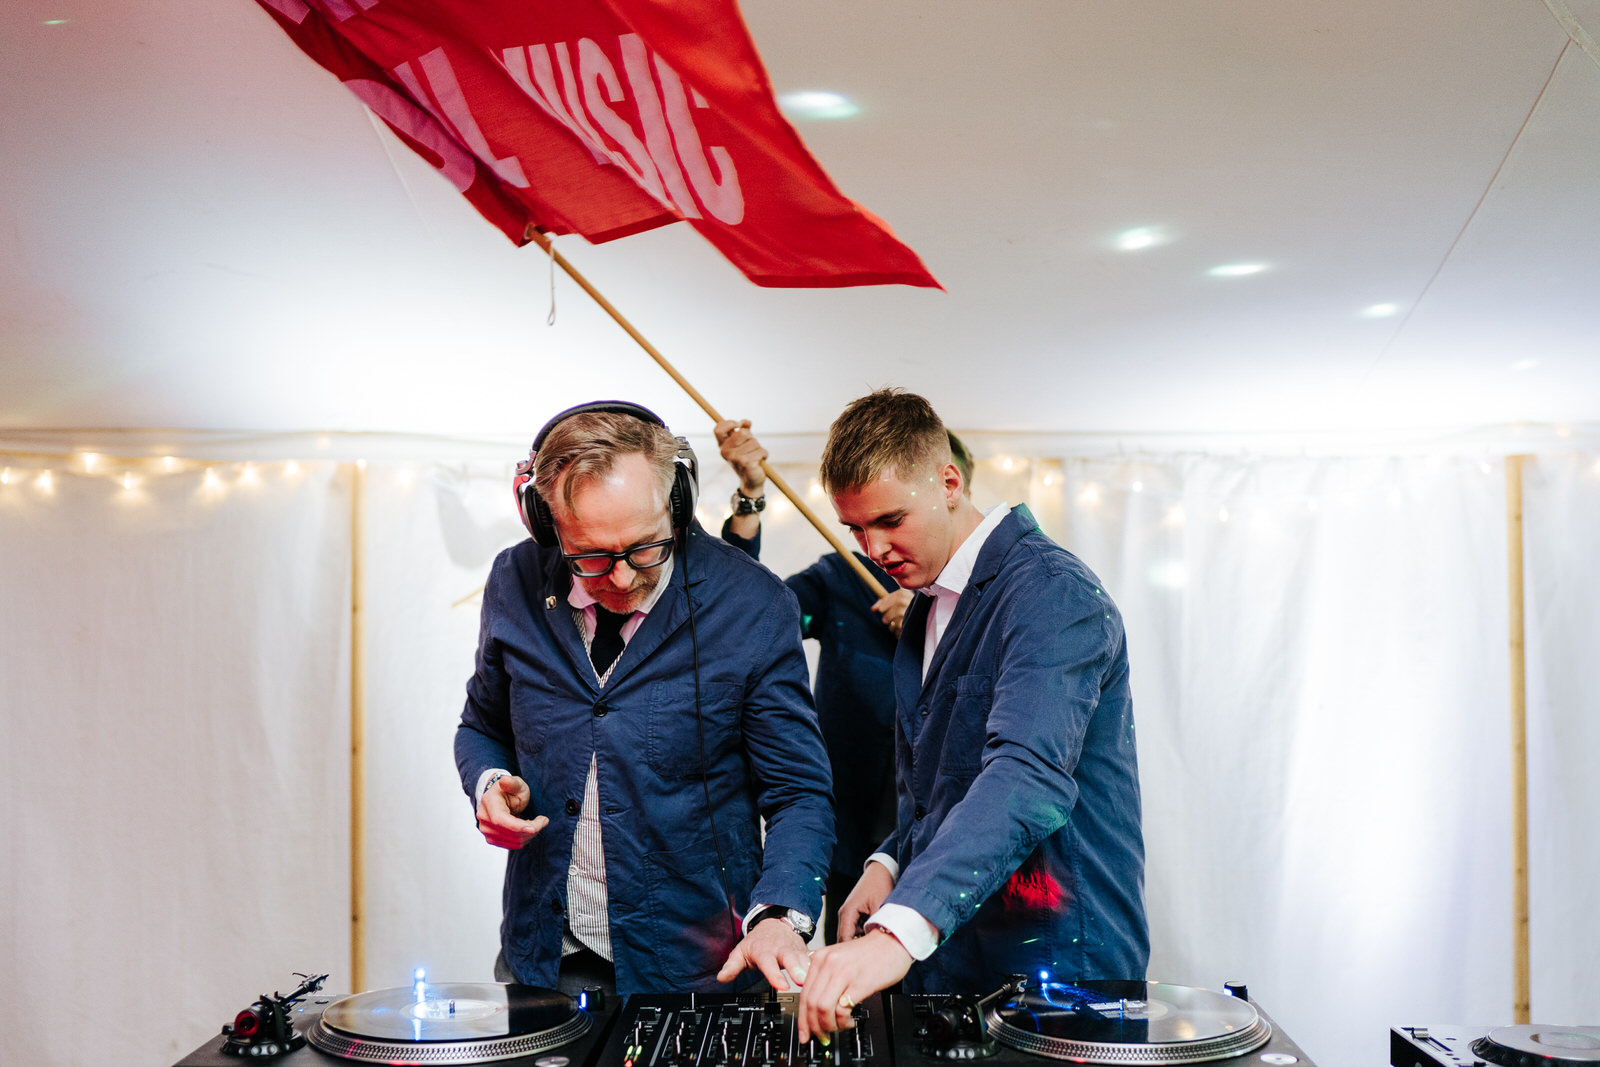 Father of the bride and brothers of the bride DJing behind the decks and waving a big red fan